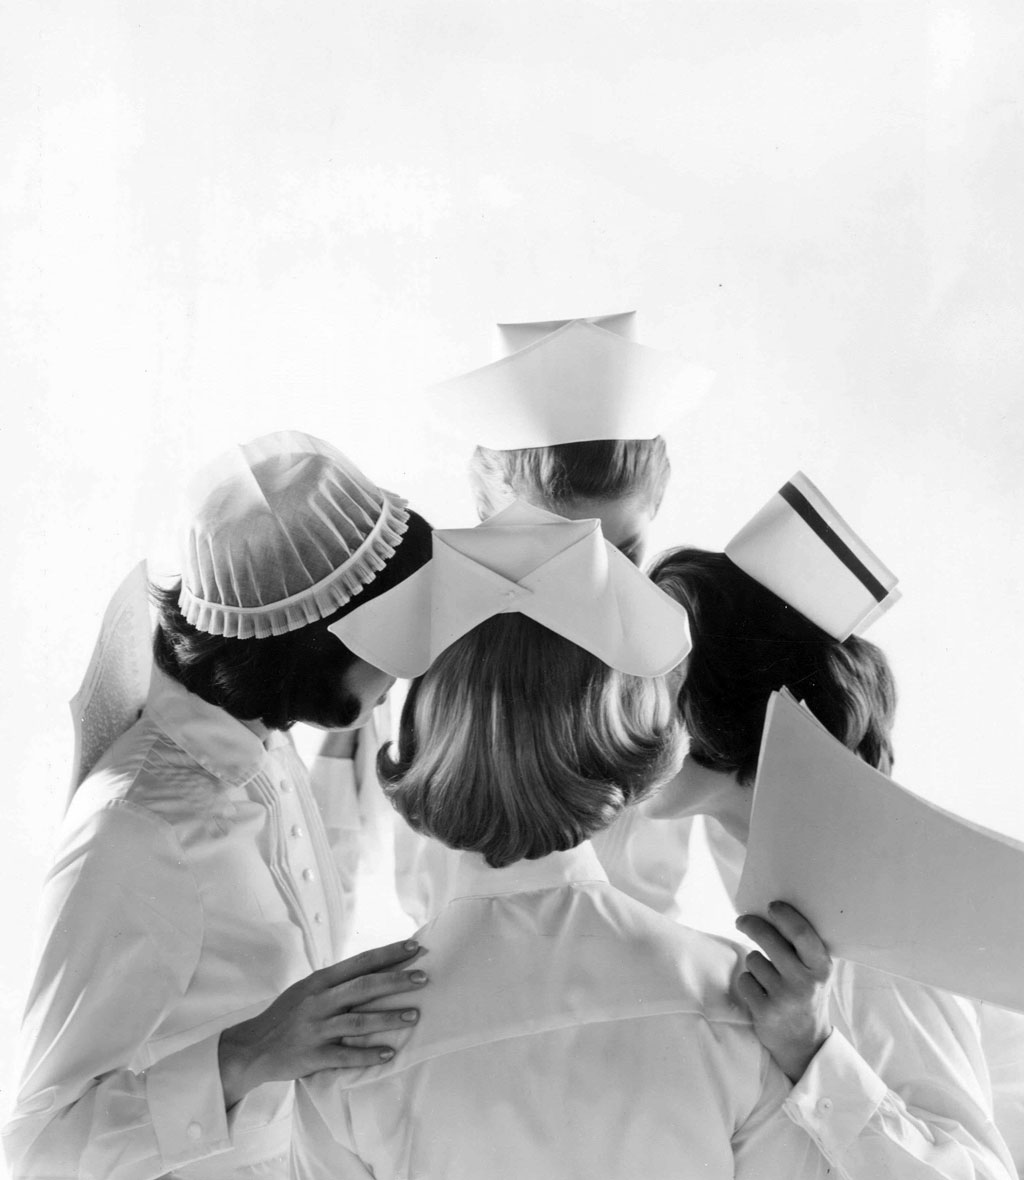 Four nurses in vintage linen hospital attire huddled in a circle